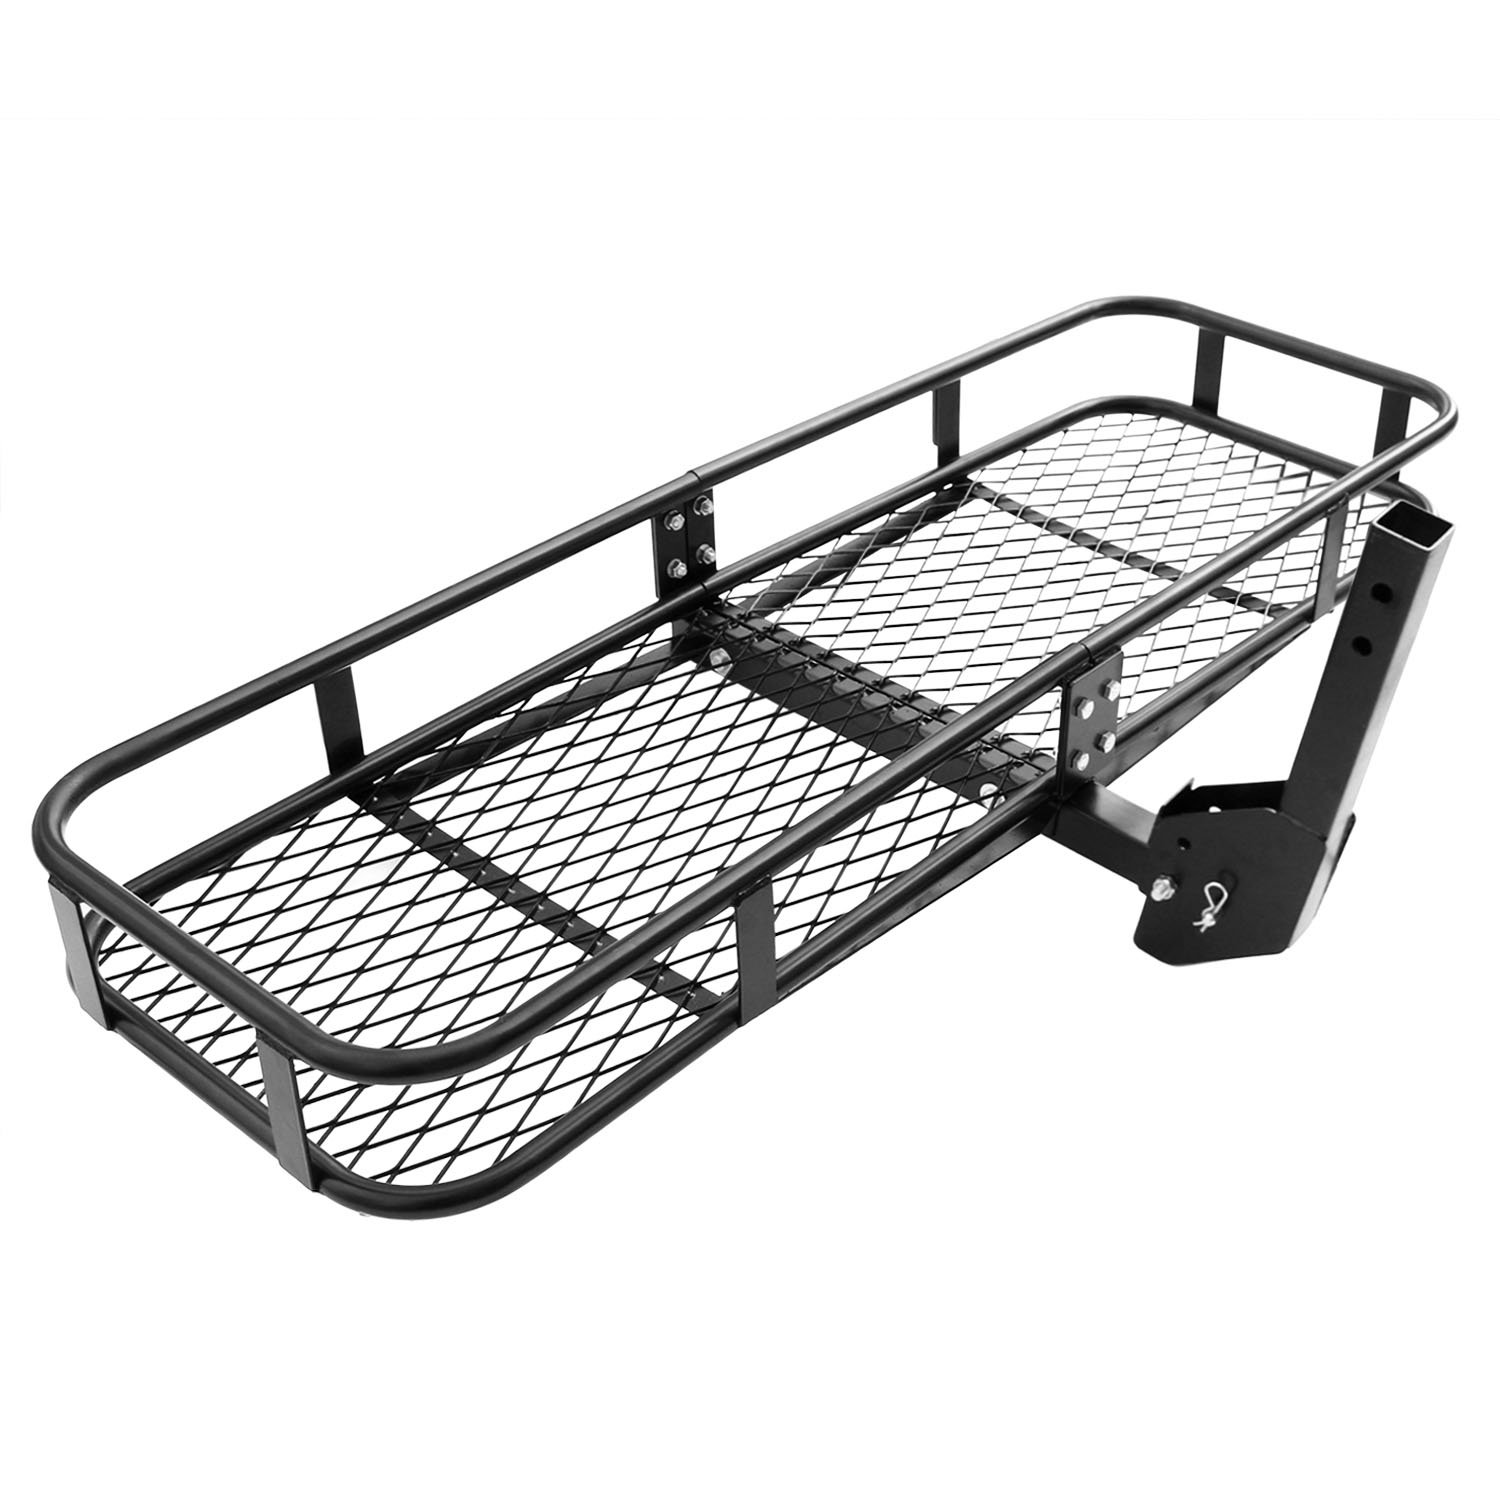 COOCHEER Sturdy Folding Cargo Carrier Basket 2'' Receivers Hitch Rack 60 x 20'' for SUV, MPV, CUV, etc - Easily Mounts to Trailer Towing Hitches by COOCHEER